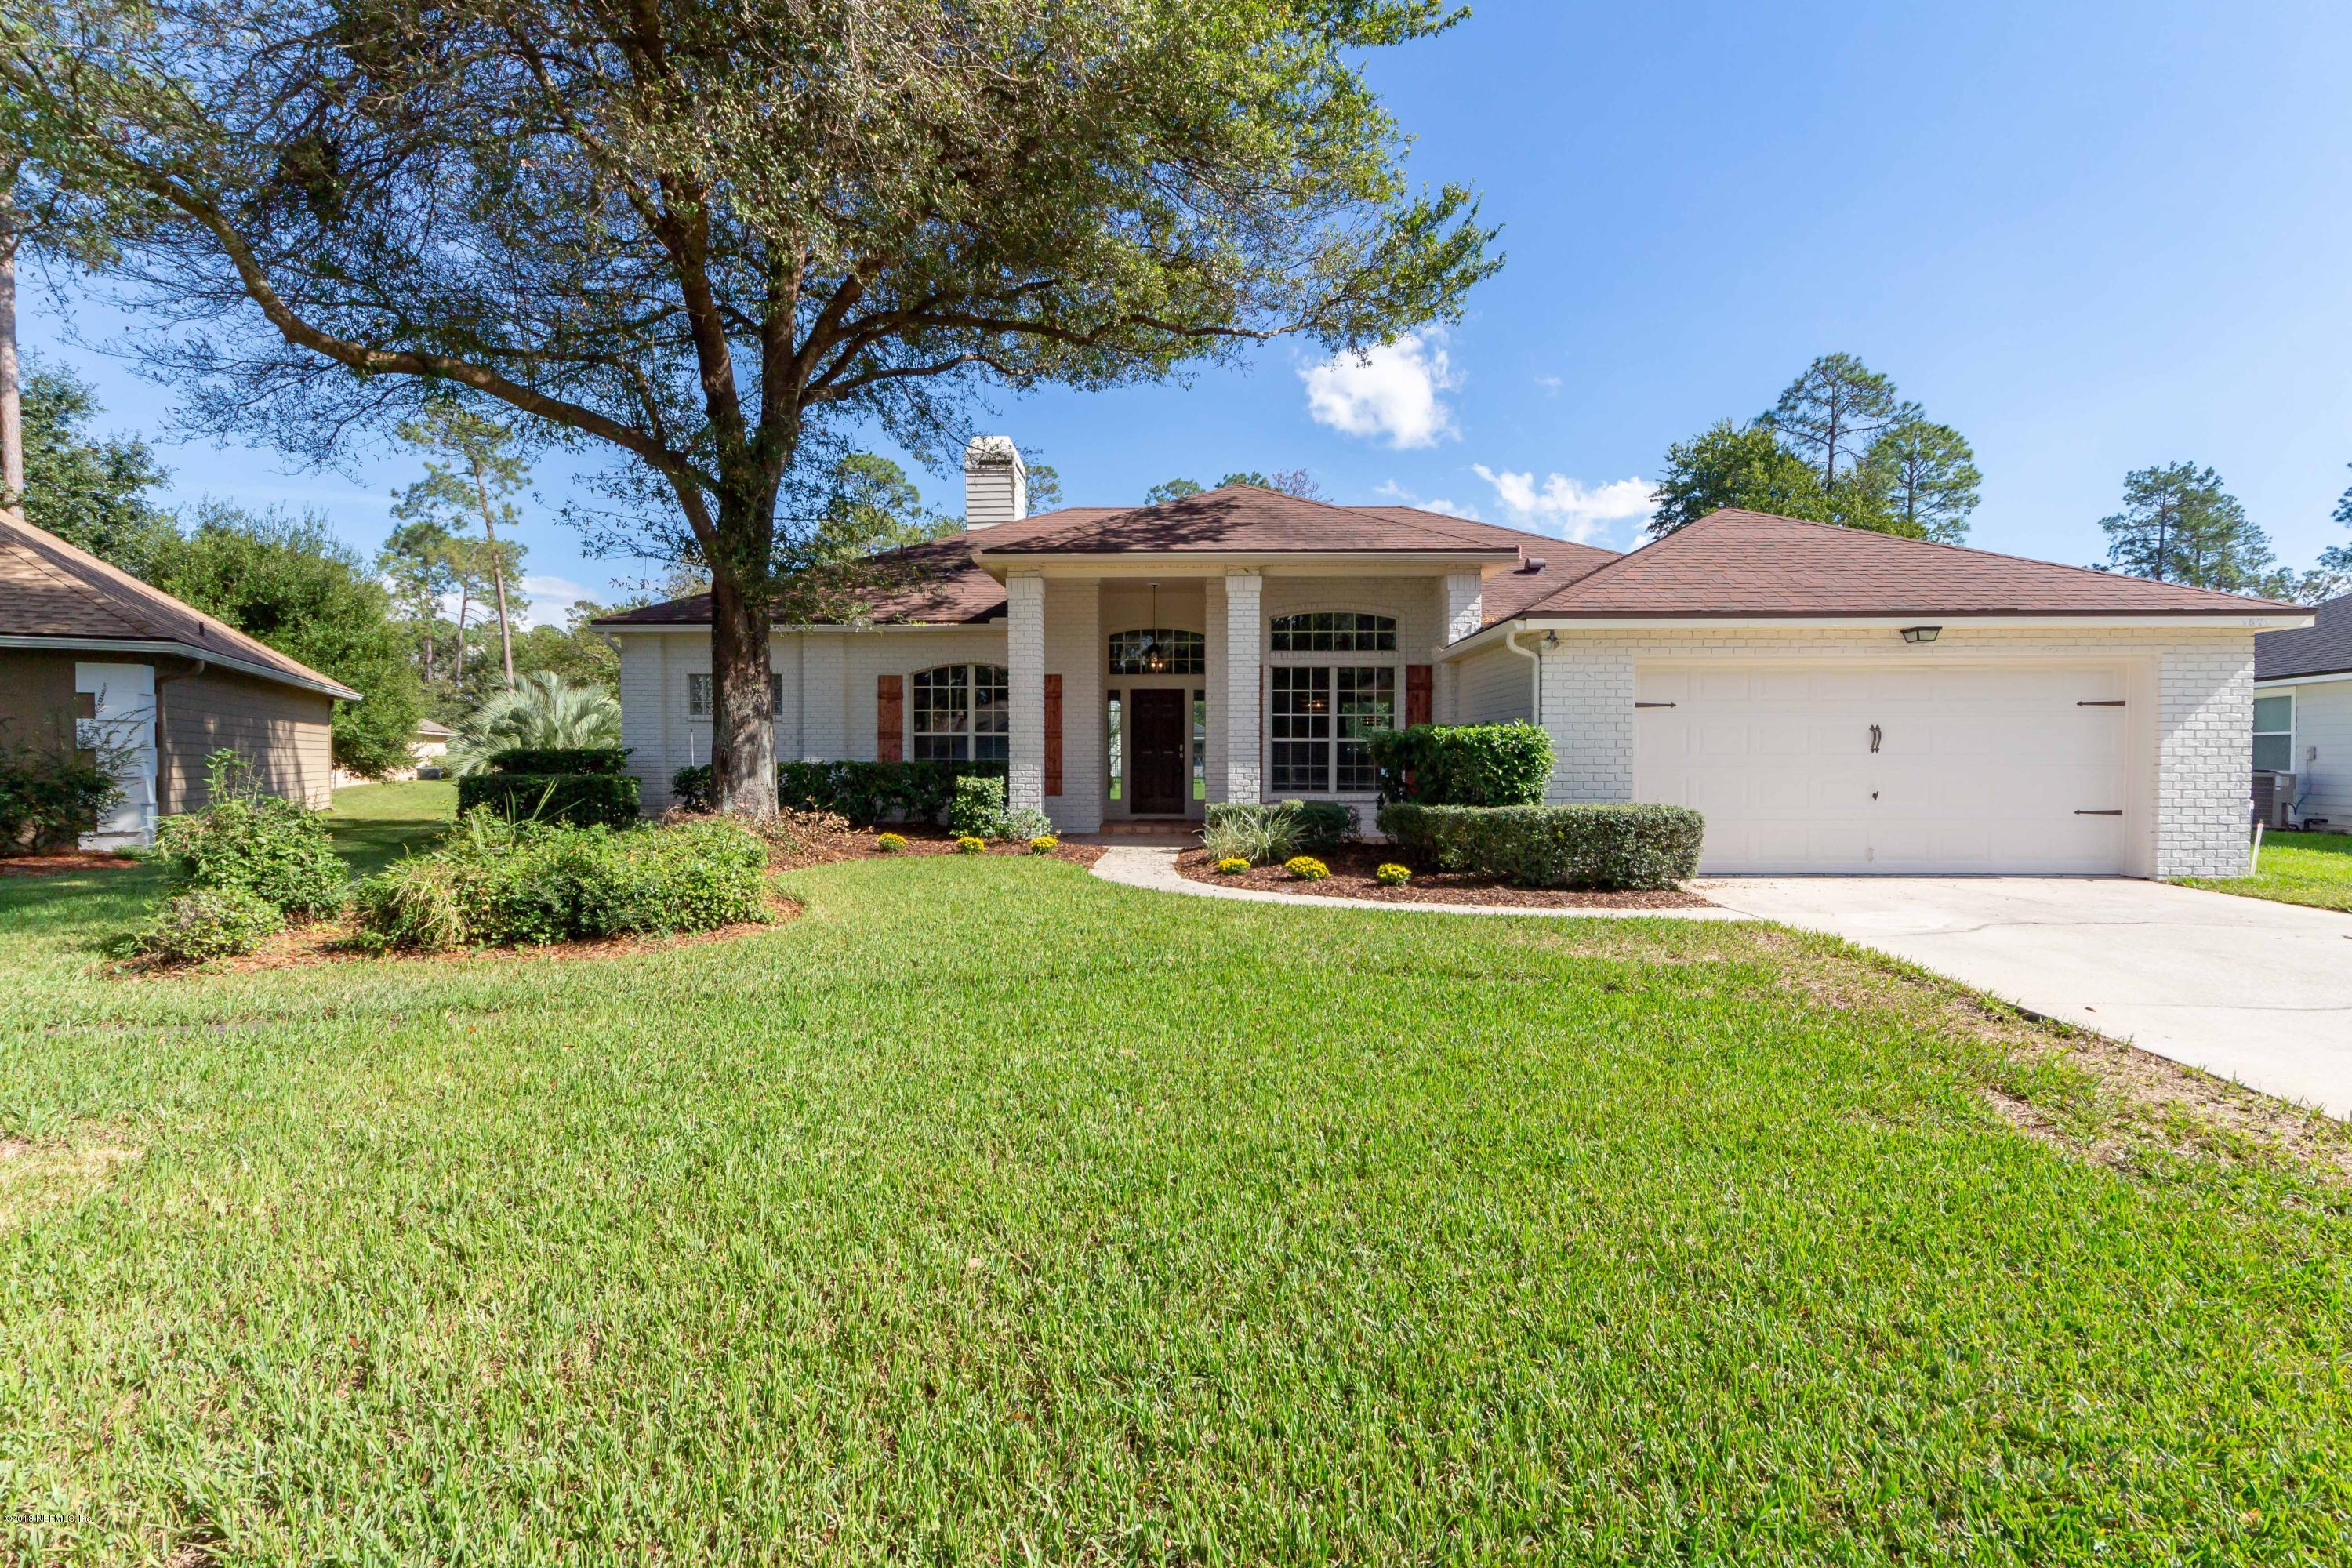 1571 SHELTER COVE, FLEMING ISLAND, FLORIDA 32003, 4 Bedrooms Bedrooms, ,2 BathroomsBathrooms,Residential - single family,For sale,SHELTER COVE,964512